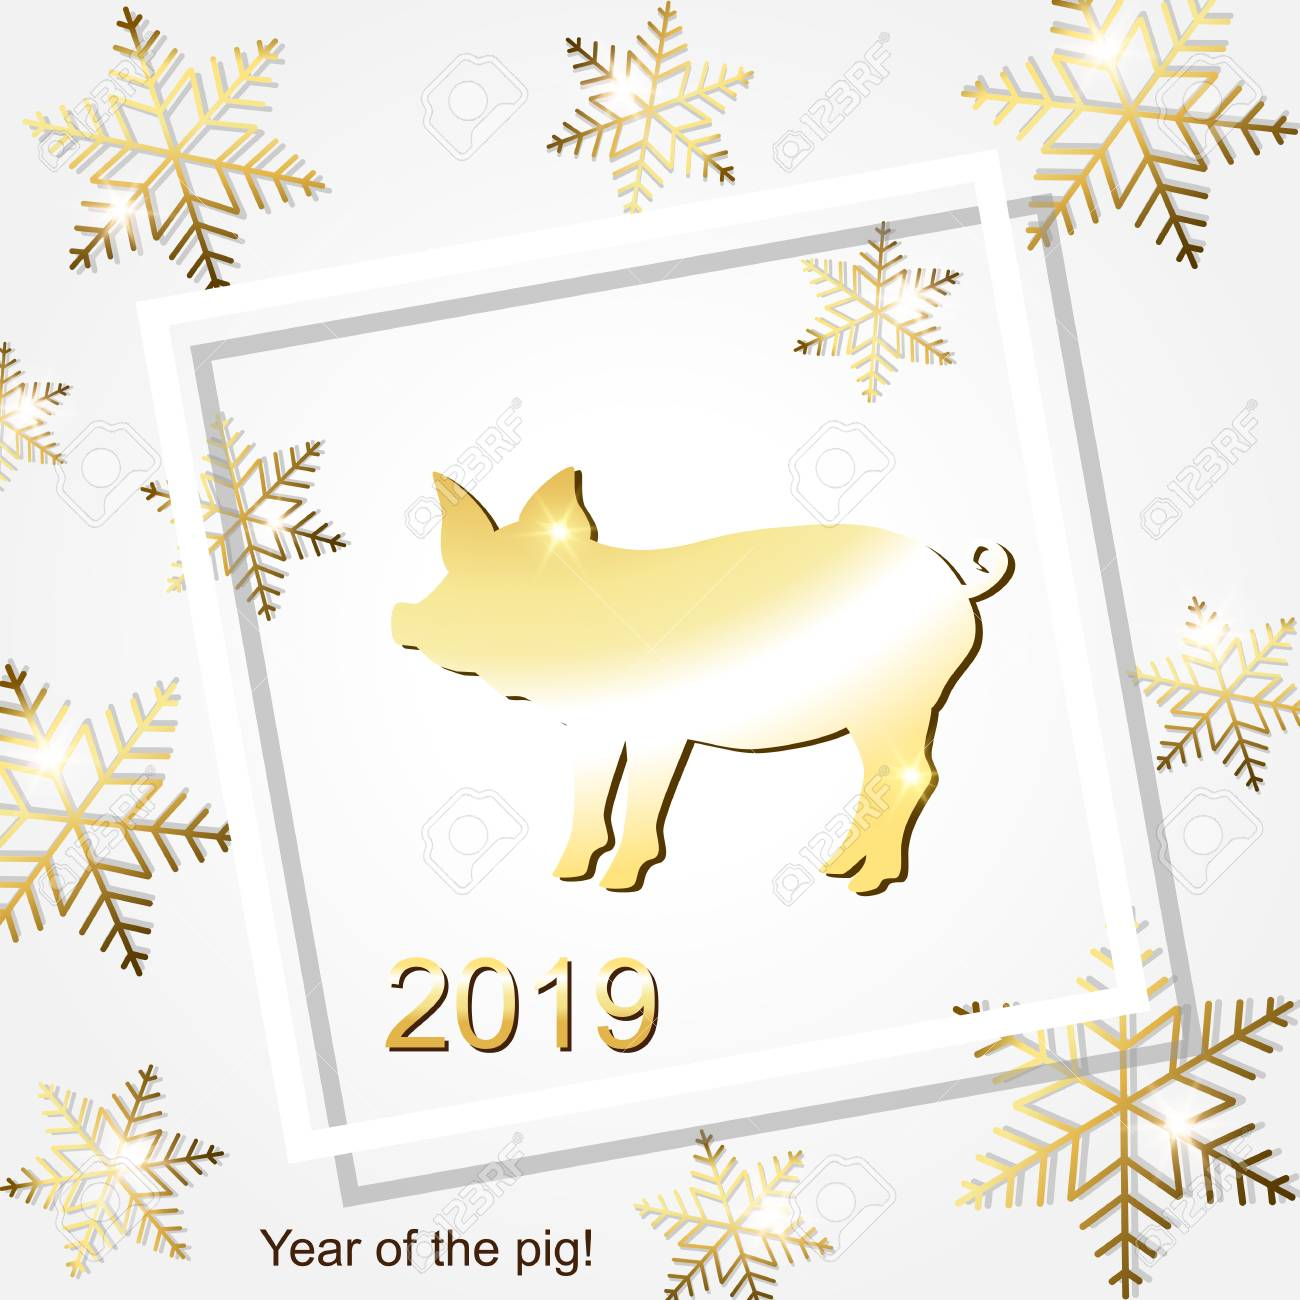 Greeting Cards With A Christmas And A New Year Of The Pig Royalty ...